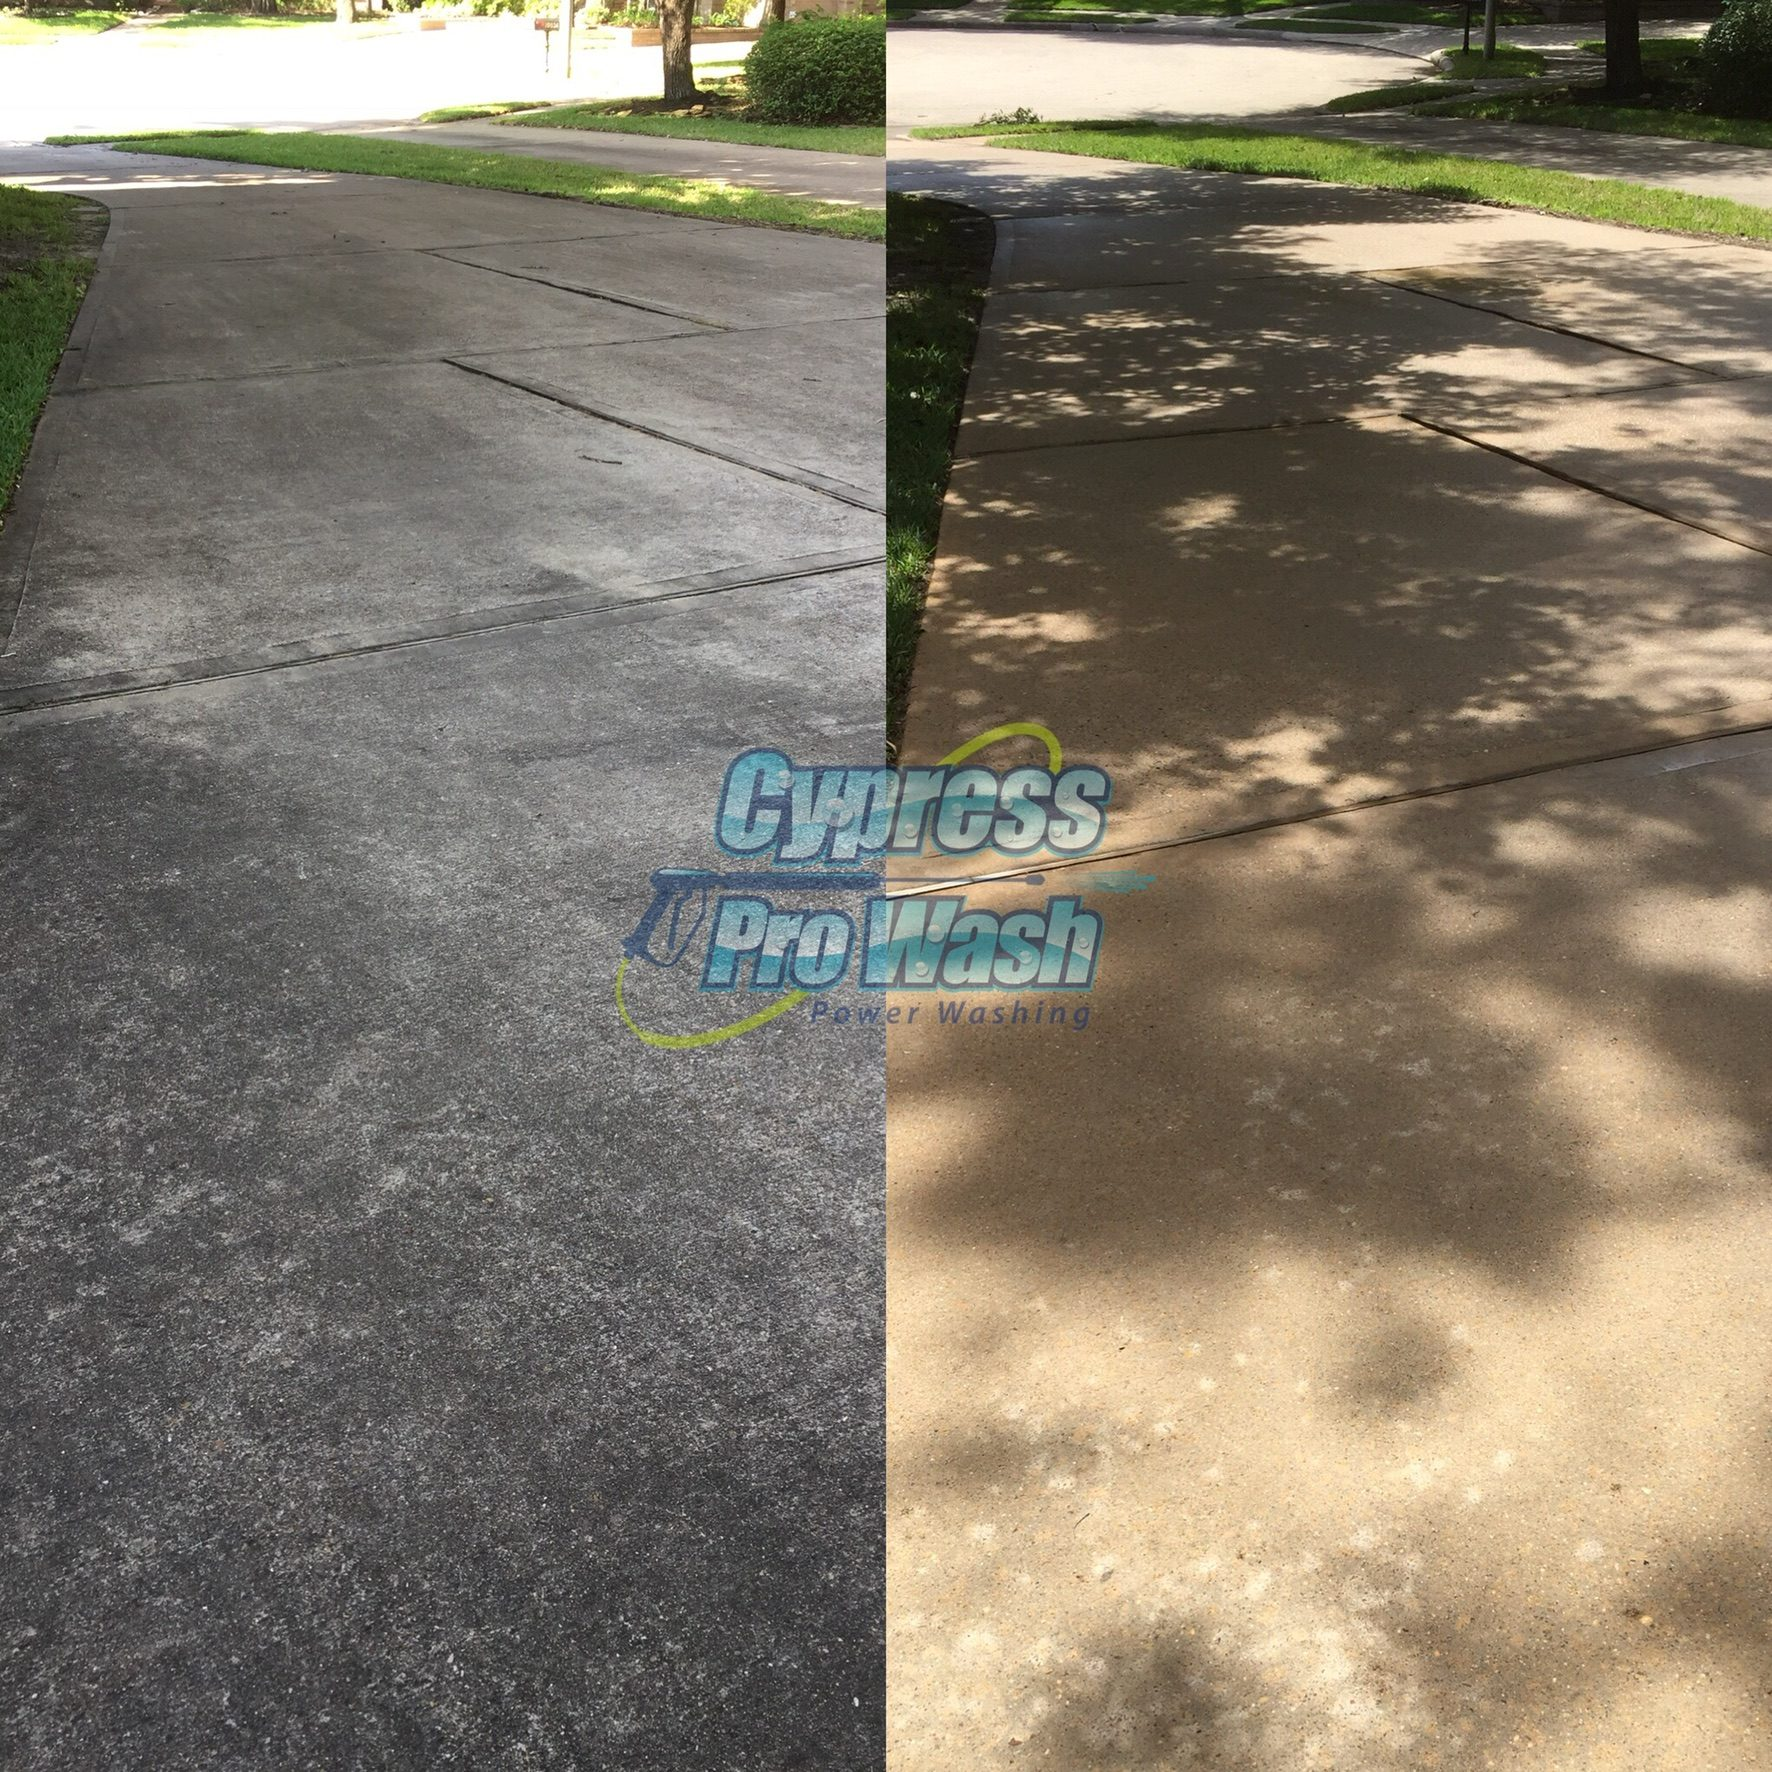 "DRIVEWAY CLEANING Make every aspect of your property count! Cypress Pro Wash provides concrete and driveway cleaning services that will turn your home into the definition of curb appeal. PRESSURE WASHING SOLUTIONS Think about the wear and tear that your concrete surfaces are exposed to in a day. Vehicles, people, the elements… These are surfaces that are constantly interacting with external factors. Our job is to restore your concrete to ""just like new"" condition. We use power washing to remove dirt, grime, algae, chewing gum, and more from your concrete and driveway. A good rule of thumb: If it doesn't belong there, our team will get rid of it safely and efficiently. We rely on the best commercial pressure washing equipment on the market and combine it with a special blend of cleaning agents. This allows us to loosen any unwanted debris and remove stains, discoloration and fading."